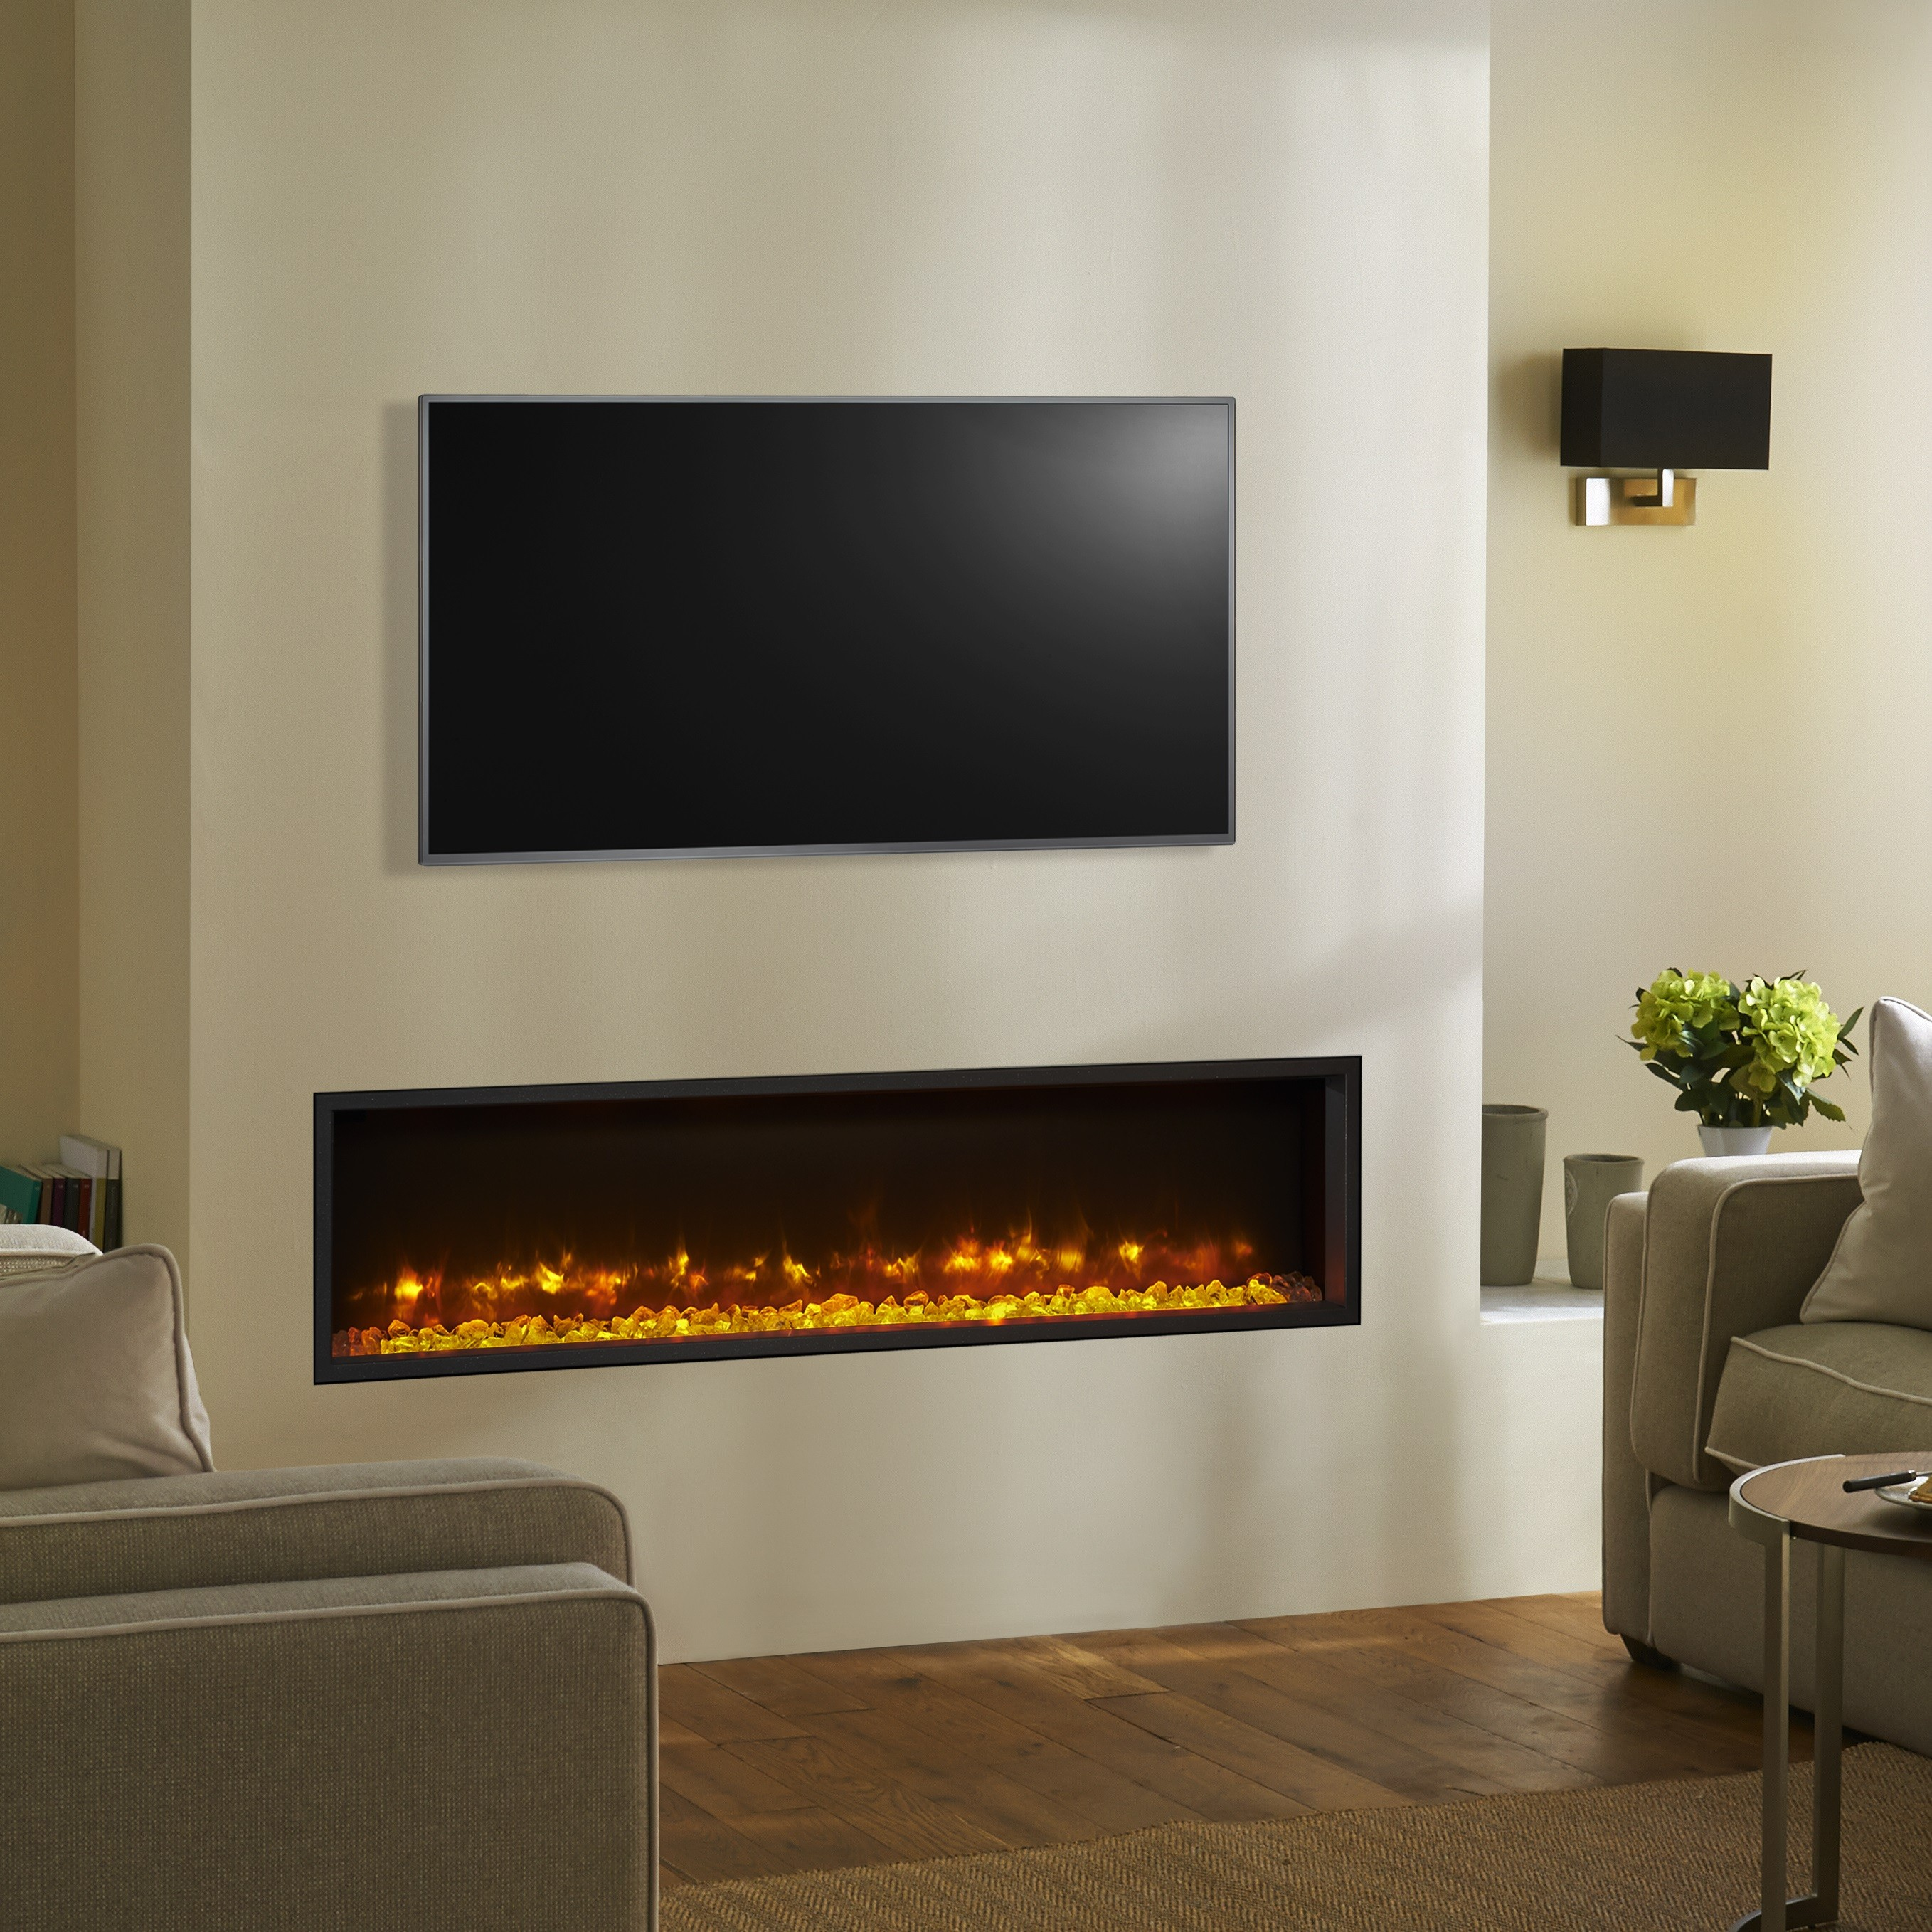 Wall Mount Electric Fireplace Or Recessed Within Designs: Recessed Electric Fires